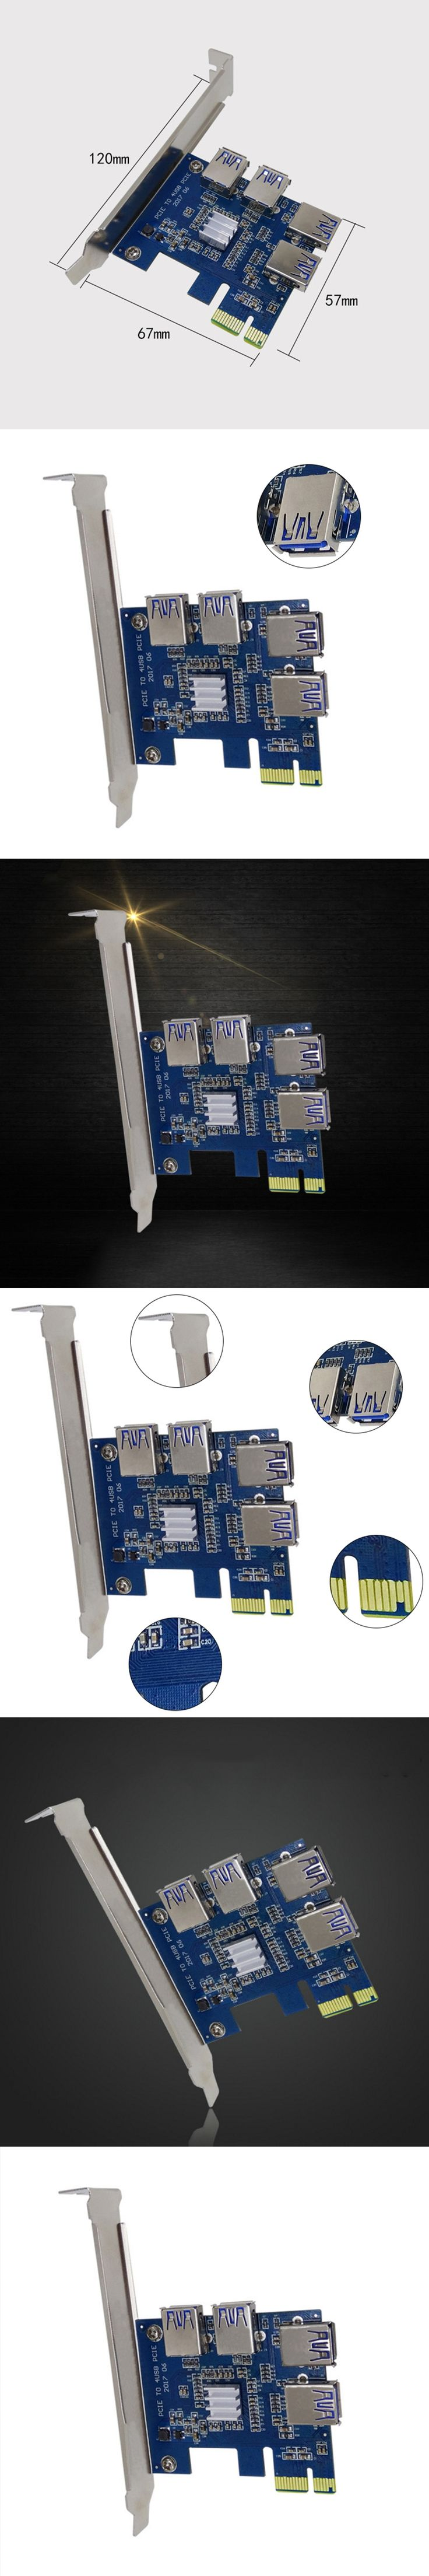 PCI-E PCI Express Riser Card Expand Card Board PCIE 1 to 4 USB Adapter Card 1x to 4-port 16x Adapter For Bitcoin Mining Machine